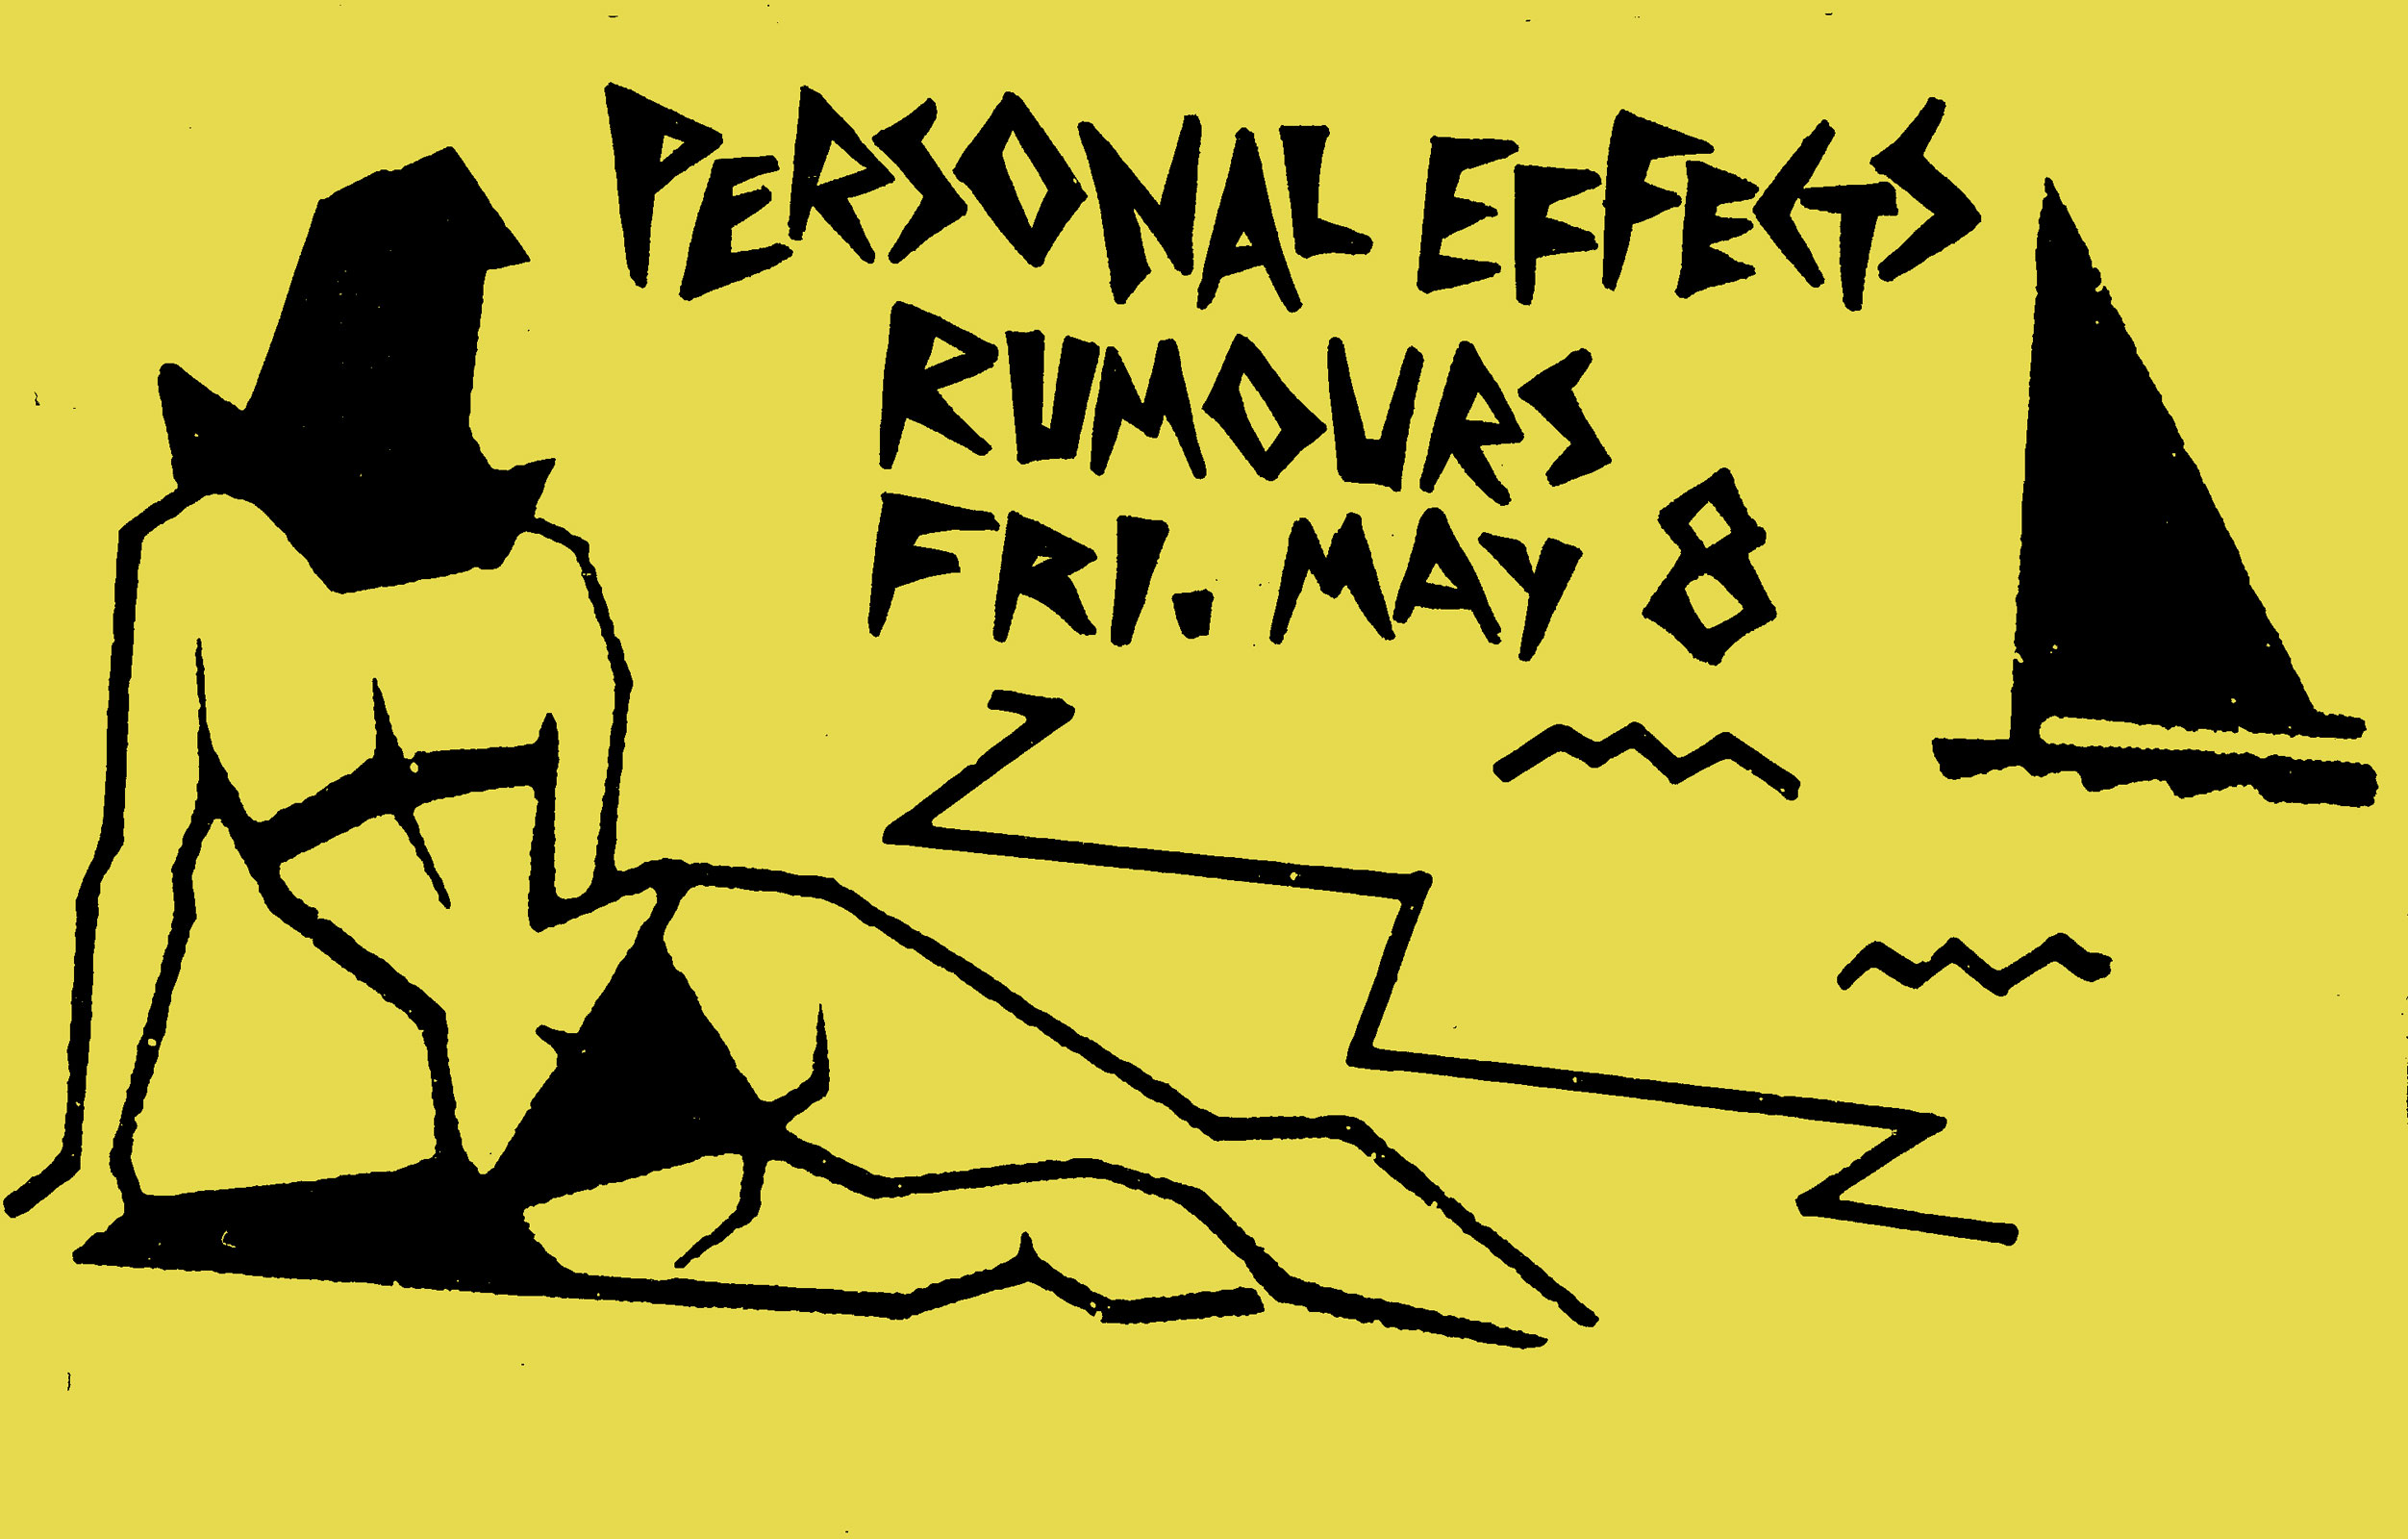 Poster for Personal Effects at Rumours, formerly Snakesister's Café and now Lux on 05.08.1987